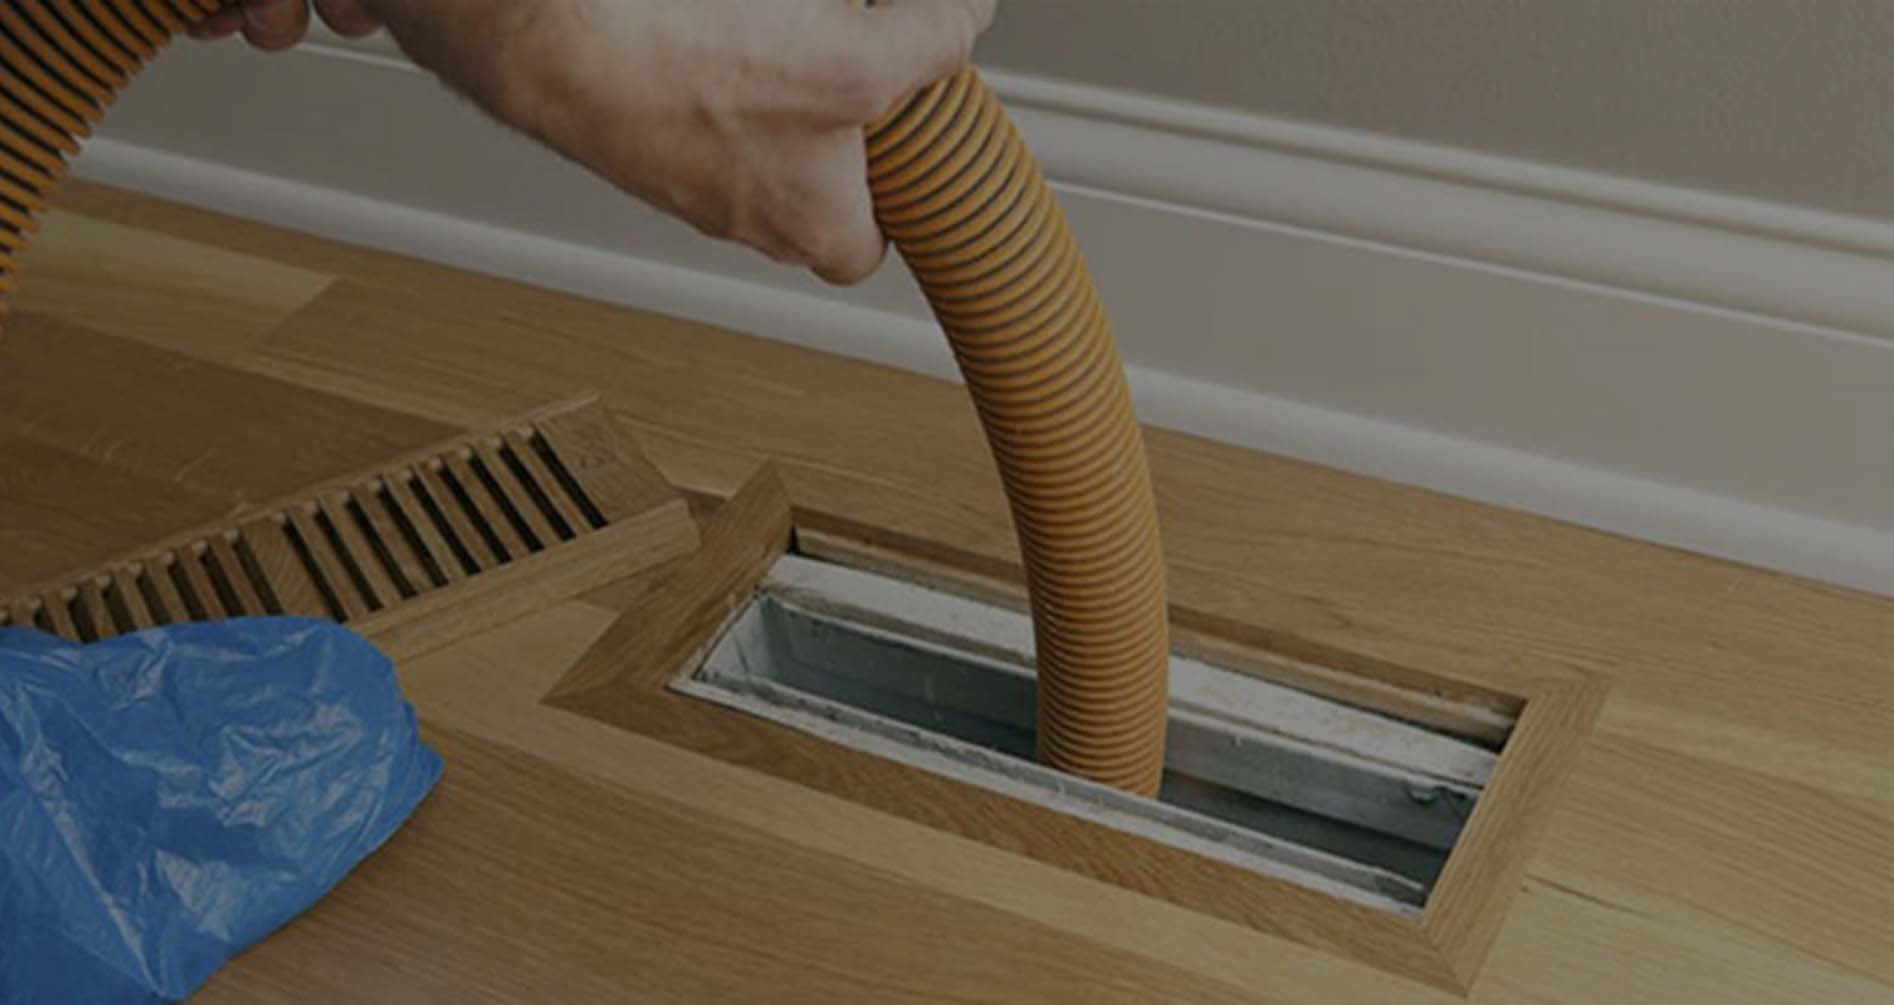 [object object] Aircare Now | Air Duct Cleaning Services aircarenow air duct cleaning